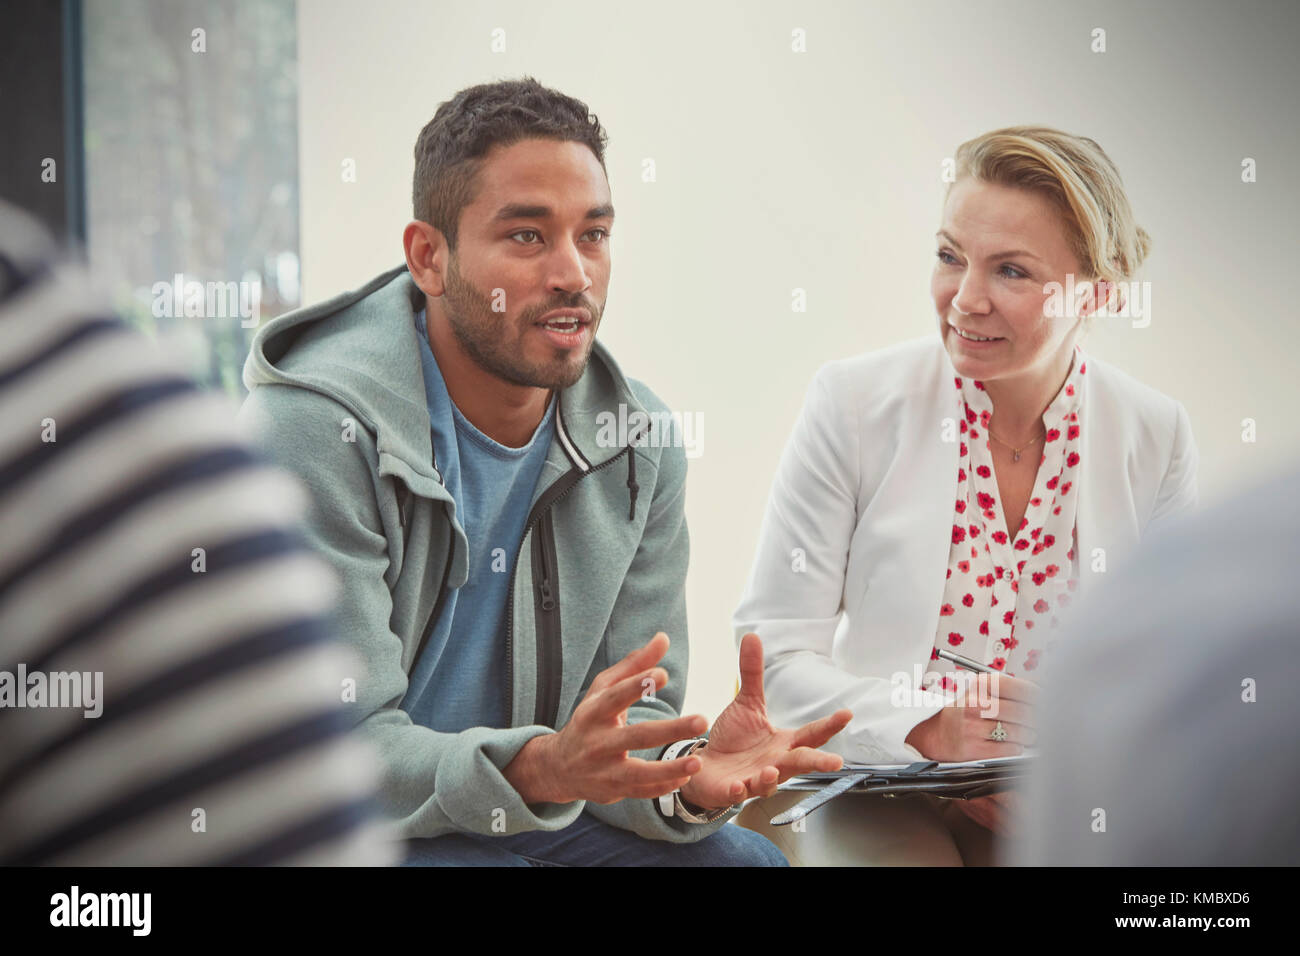 Young man talking in group therapy session - Stock Image